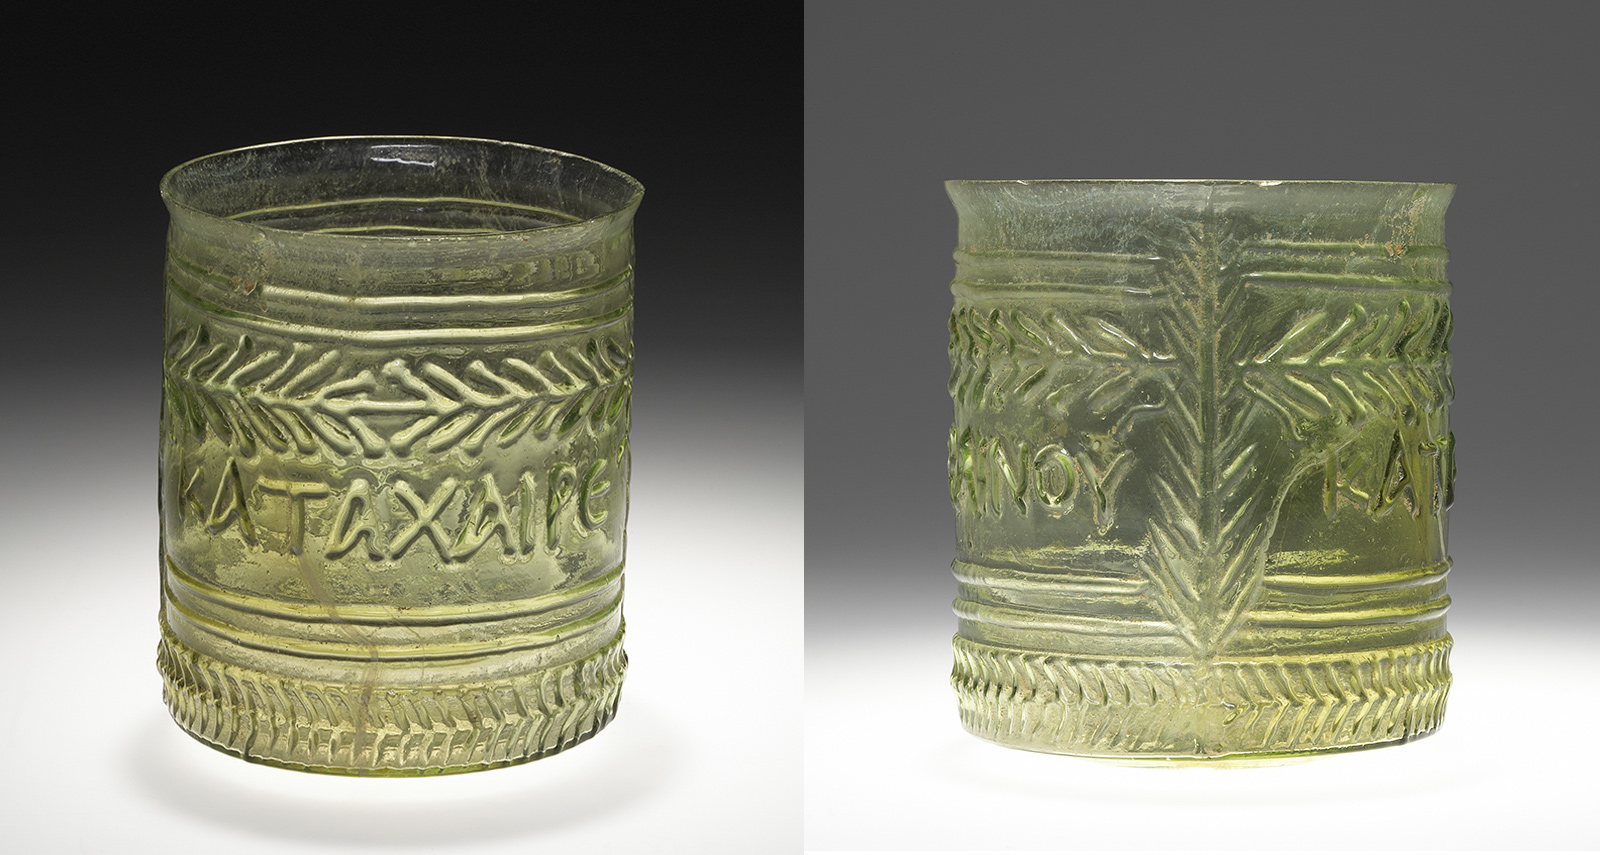 Two views of a stout drinking glass in green glass with raised decoration of letters and leaf shapes